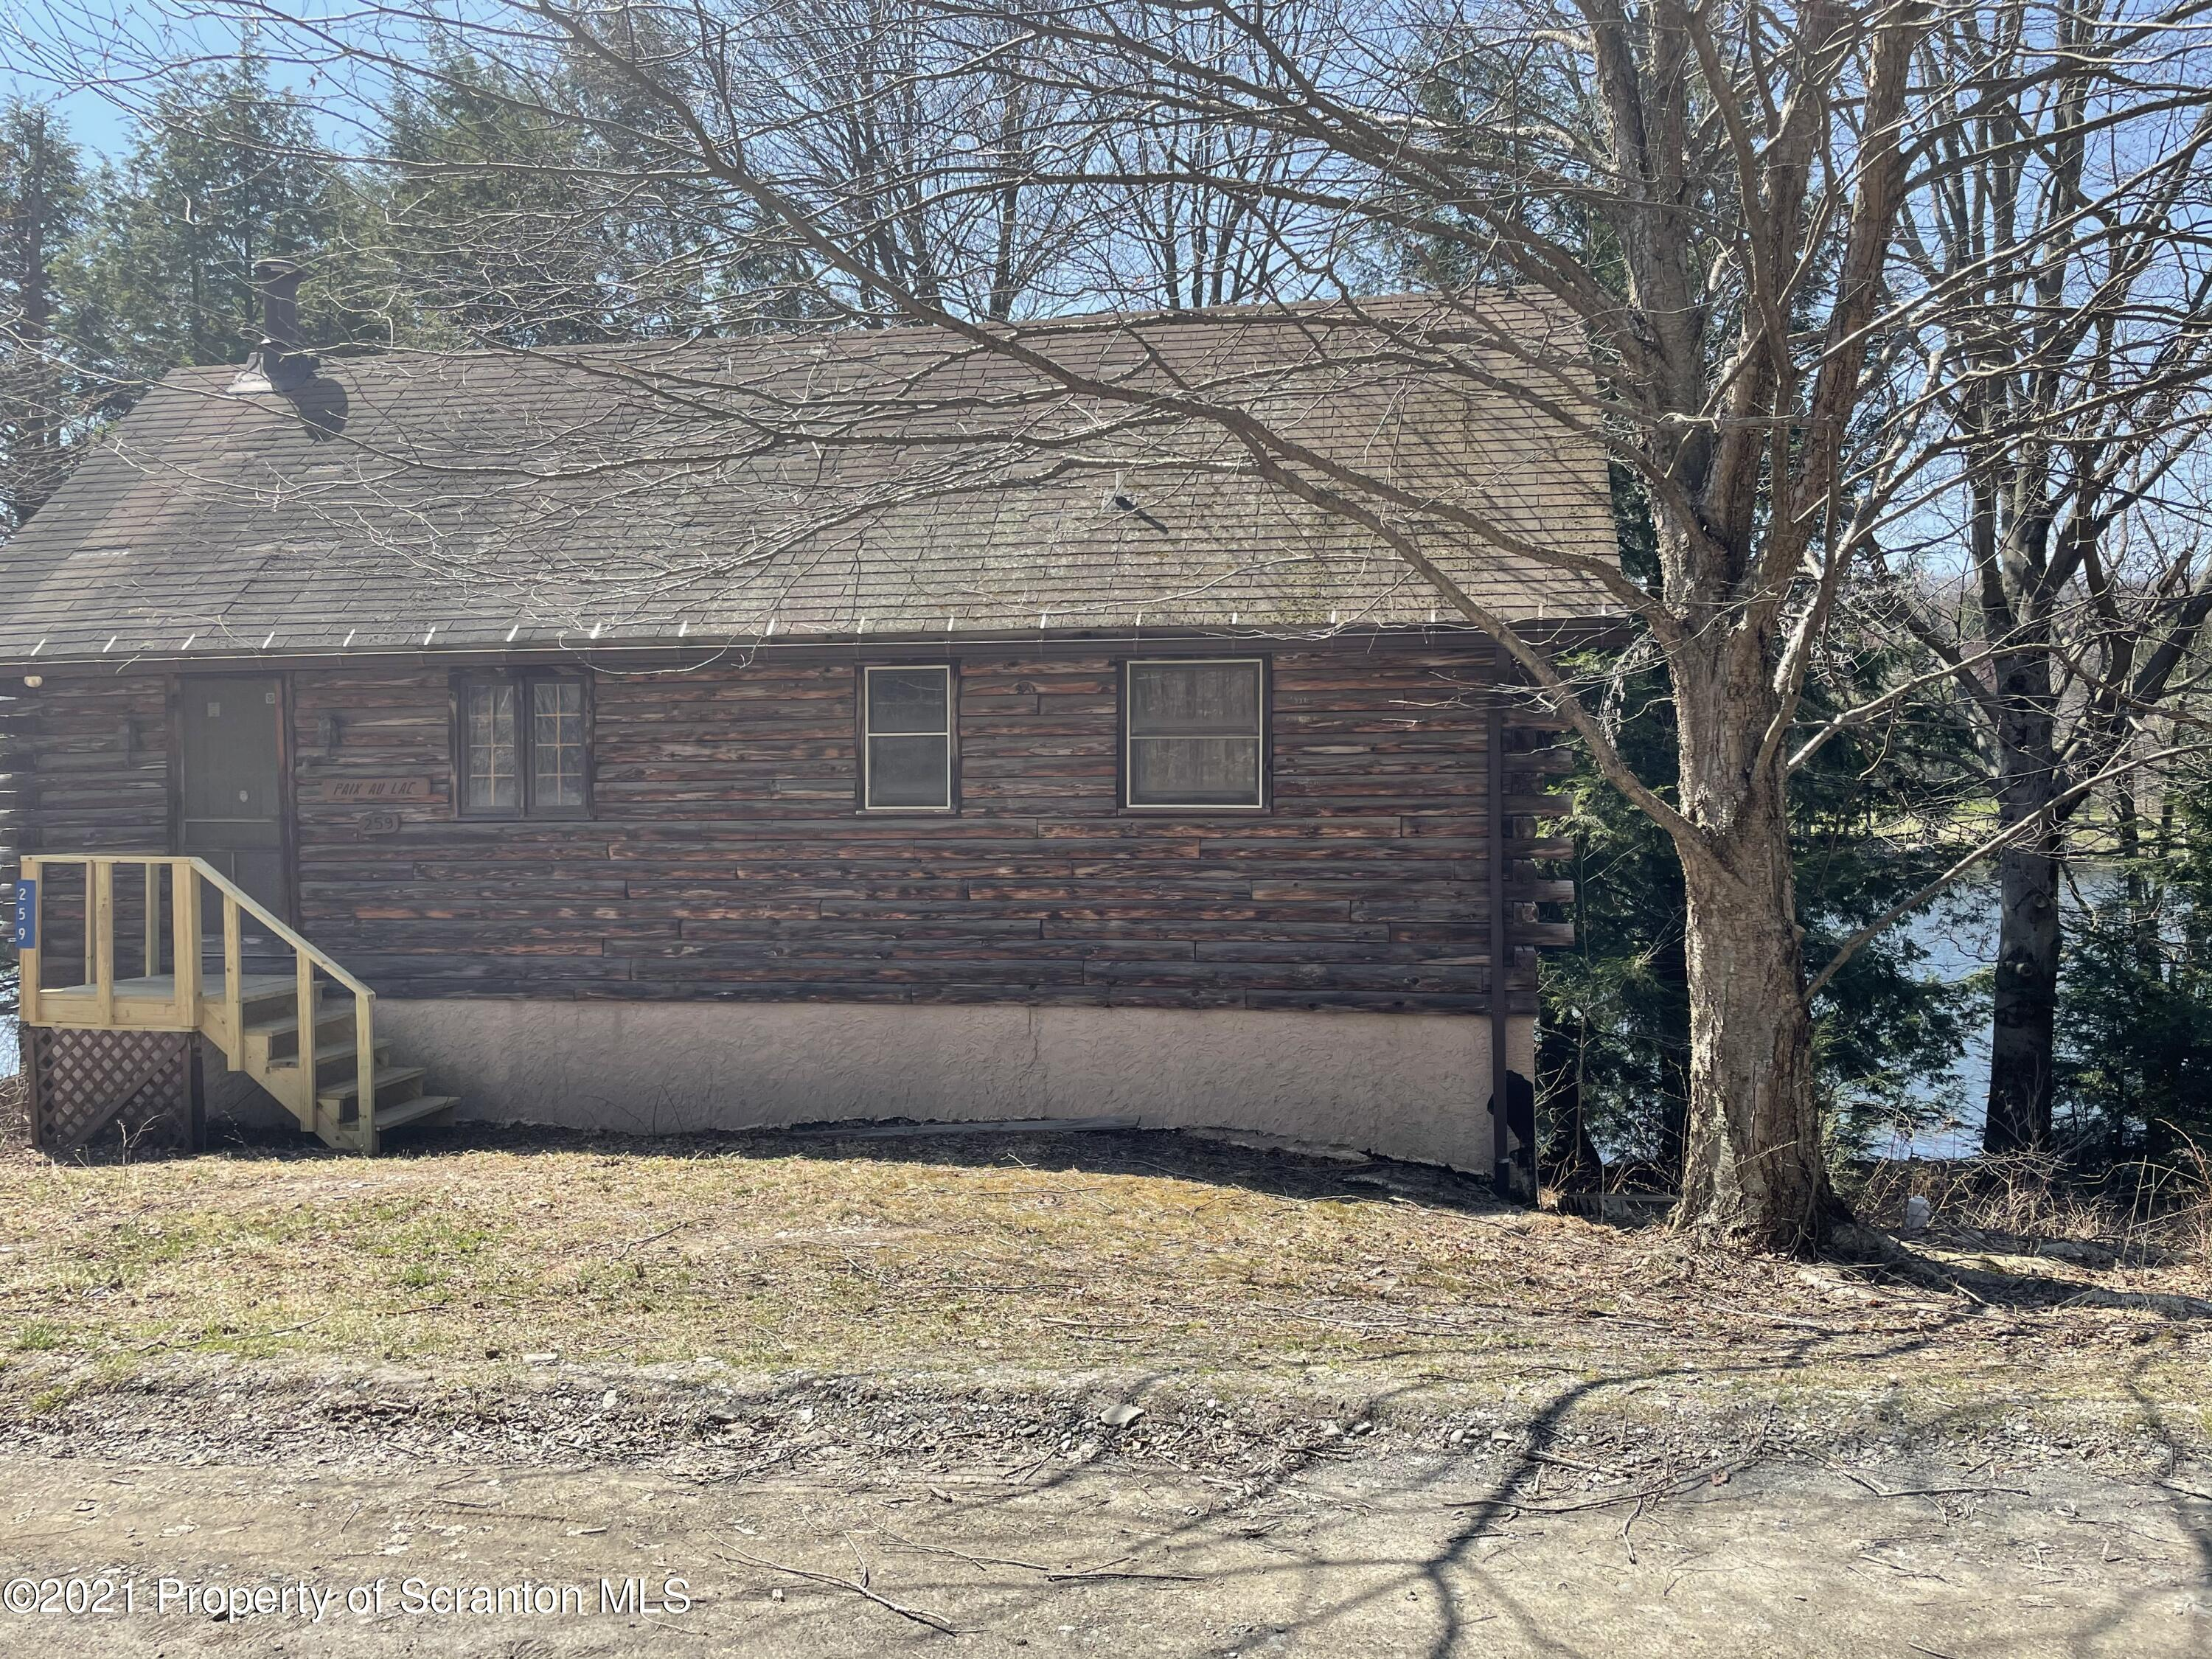 259 Loomis Road Lake Chrisann, Montrose, Pennsylvania 18801, 1 Bedroom Bedrooms, 3 Rooms Rooms,1 BathroomBathrooms,Single Family,For Sale,Loomis Road Lake Chrisann,20-5403